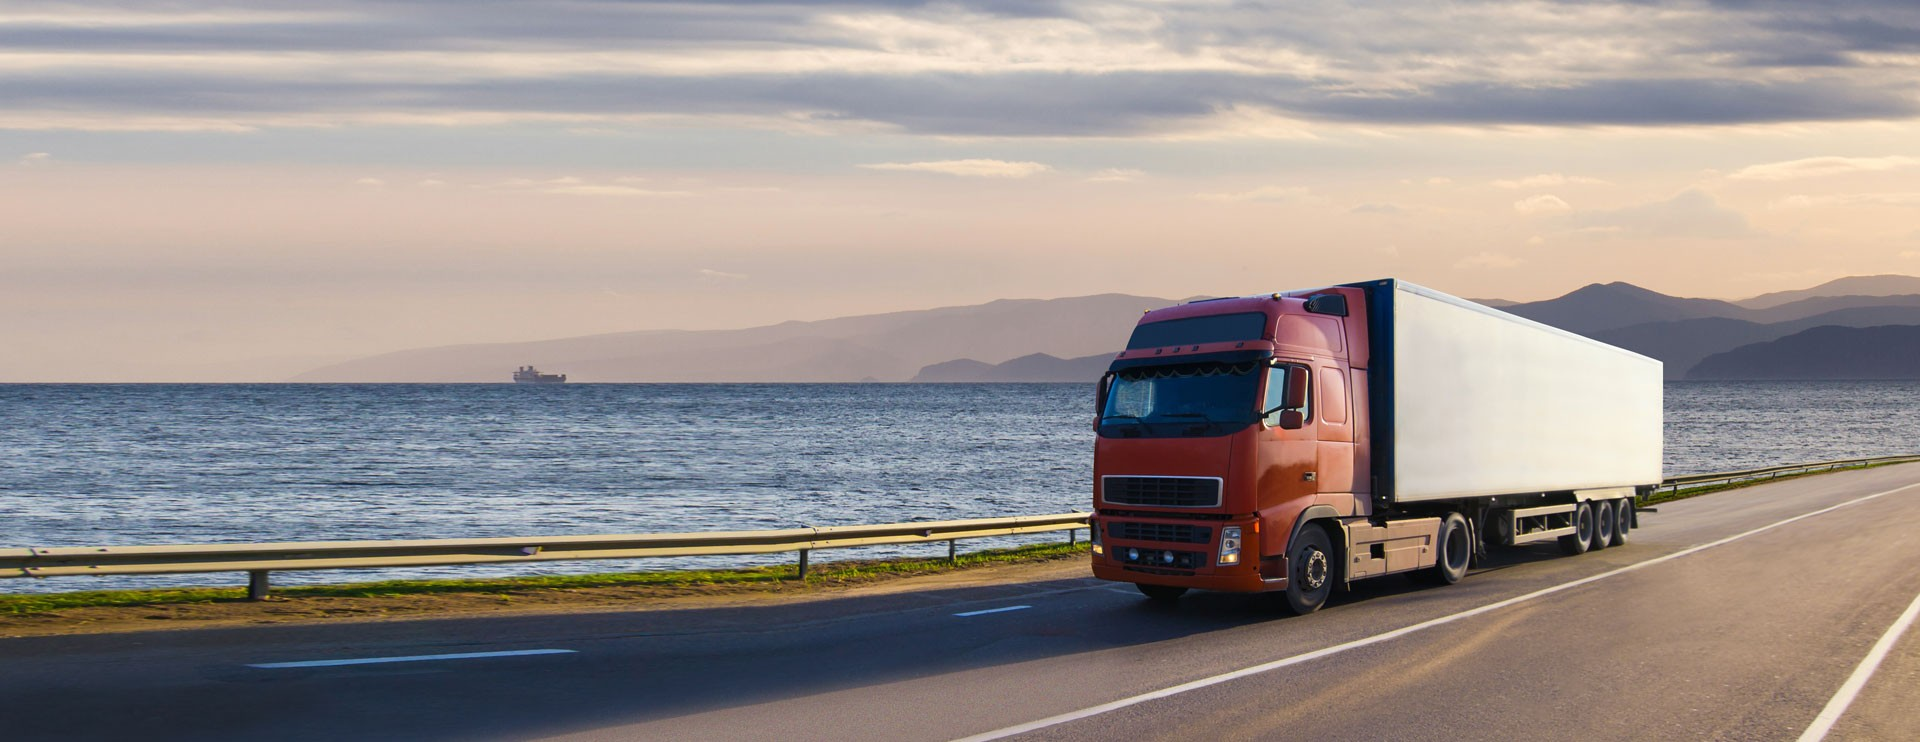 semi-truck on the highway with the ocean in the background